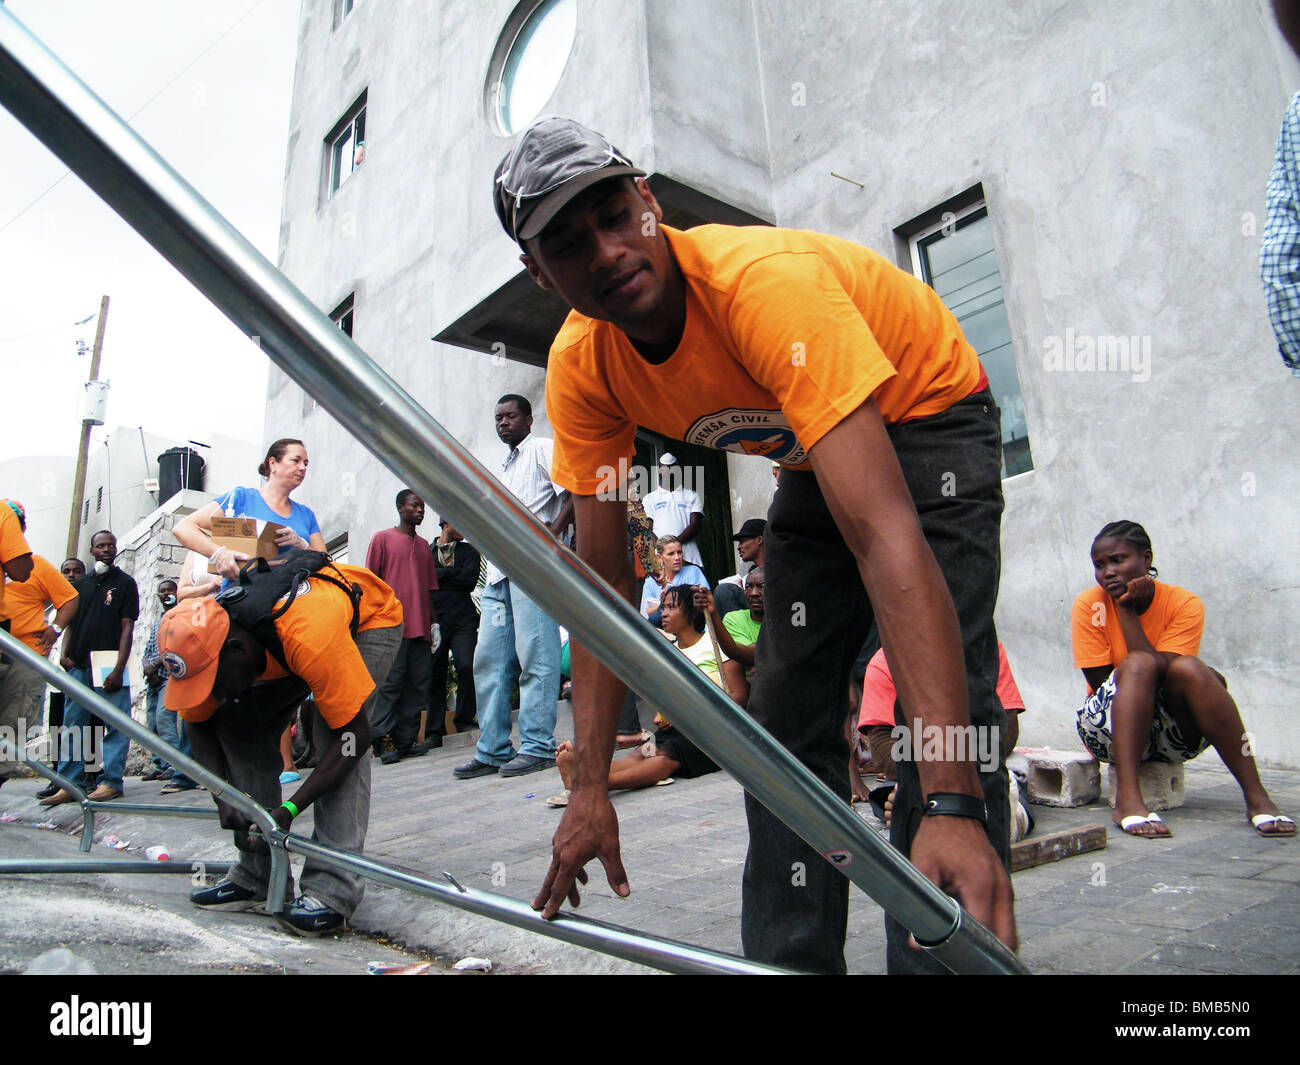 A Dominican aid team erects a medical tent outside a hospital in Port au Prince after the Haiti earthquake - Stock Image